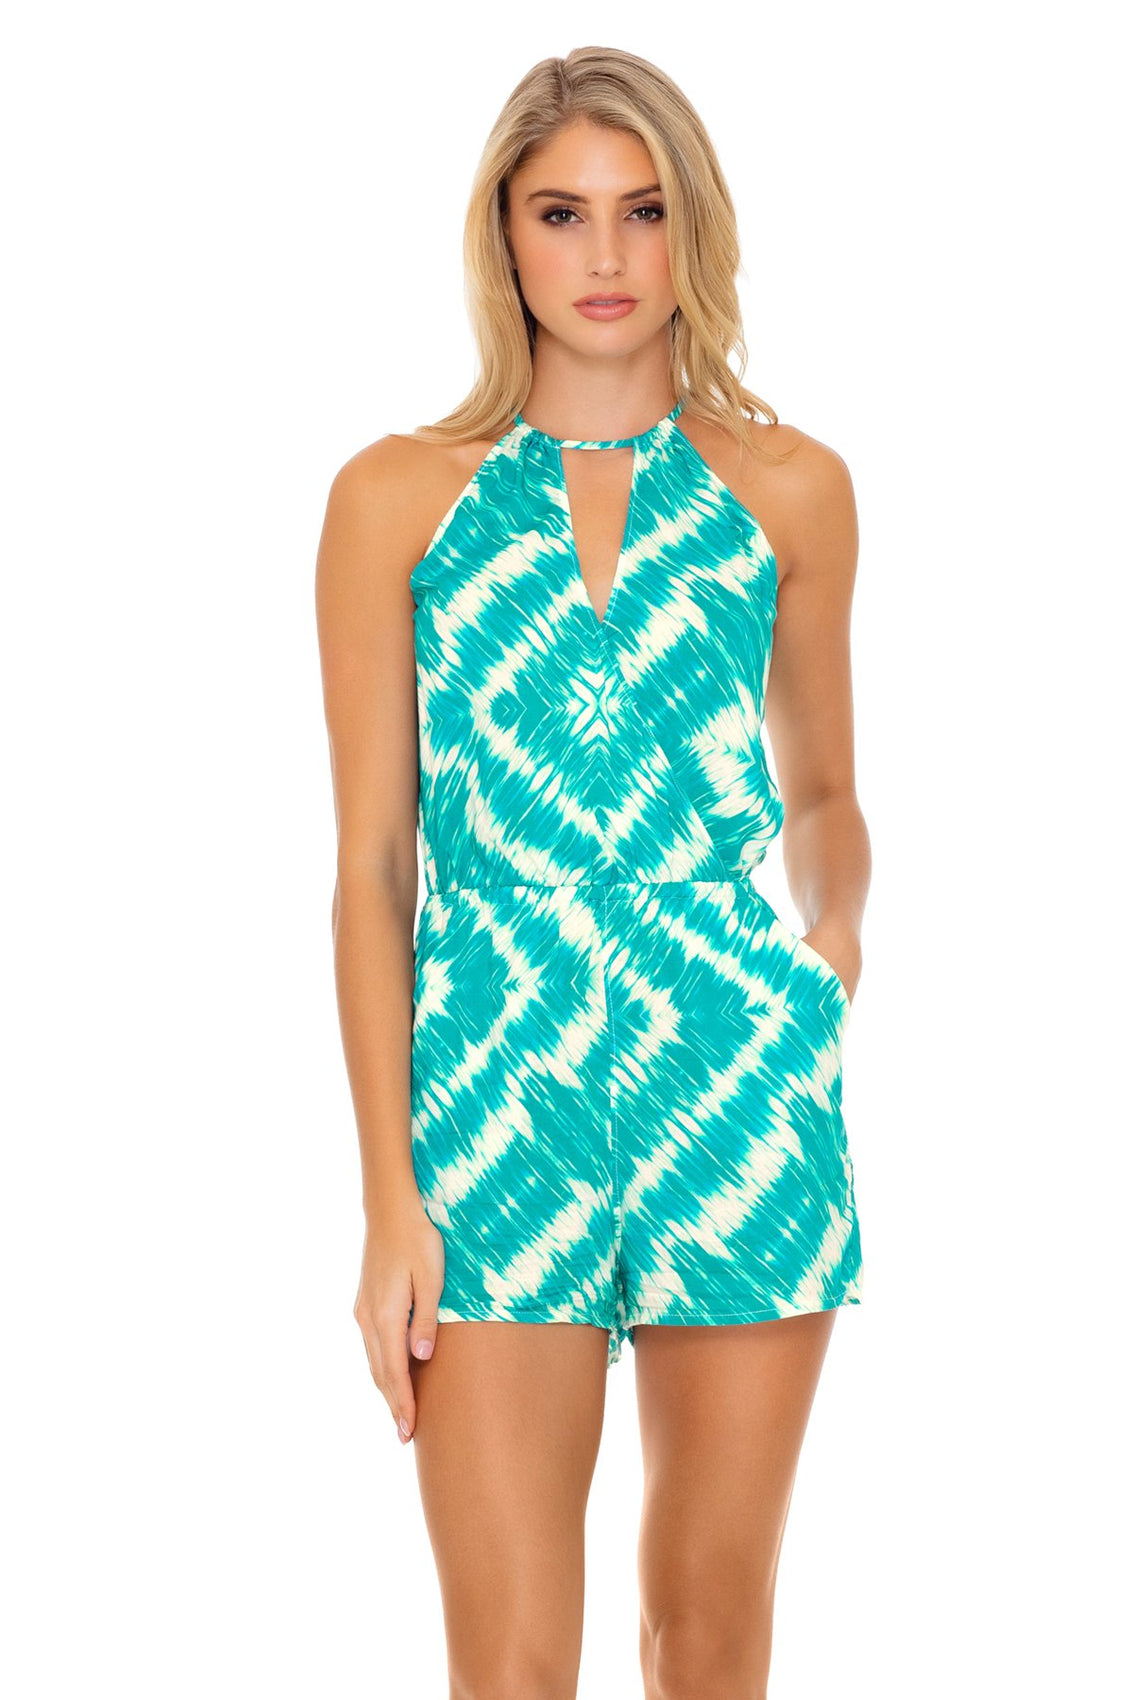 MERMAID WISHES - Señorita Romper • Multicolor